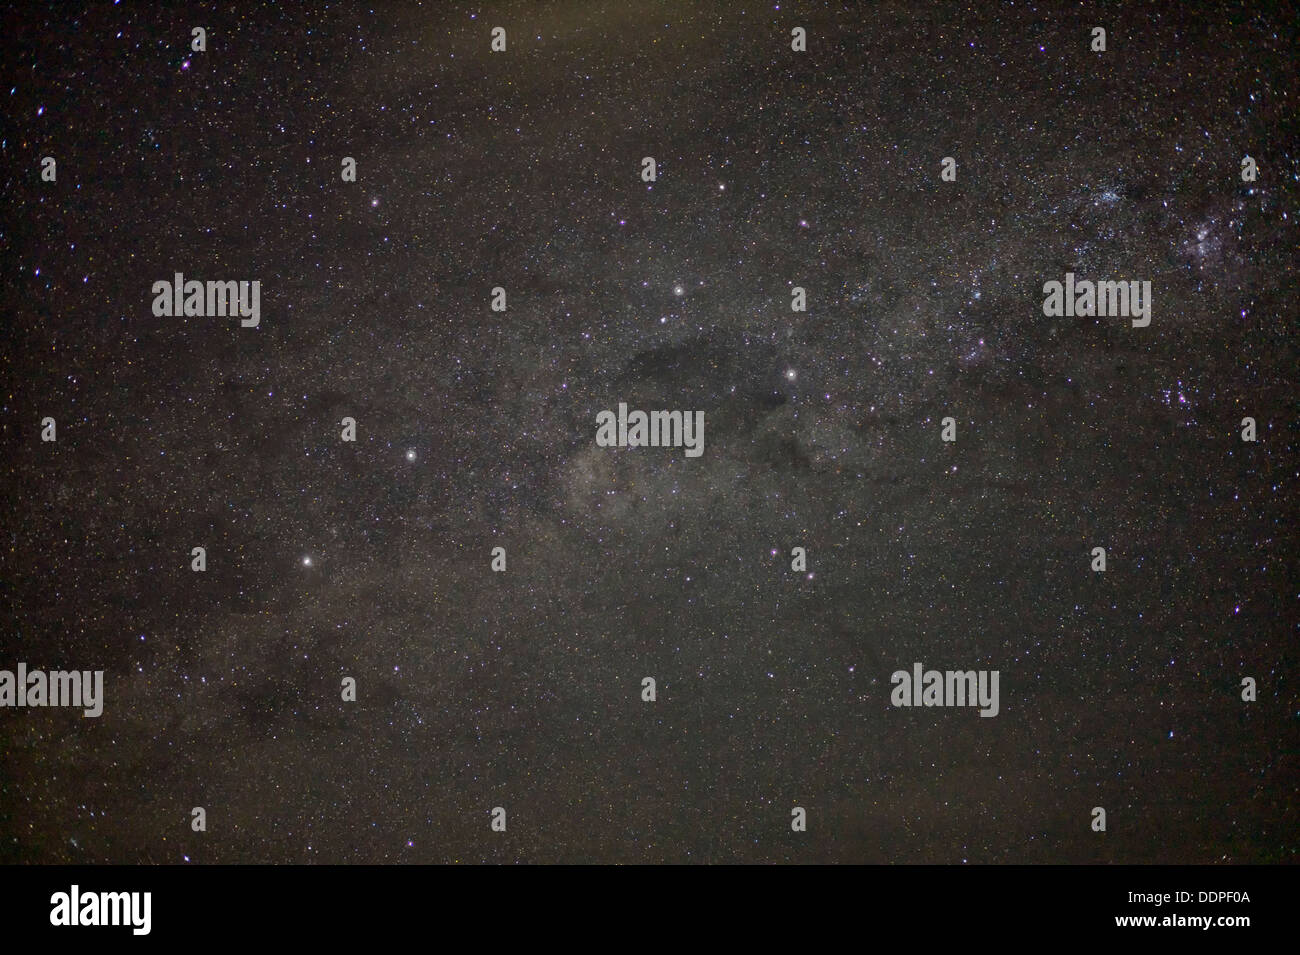 Milky Way Galaxy. Bora Bora. - Stock Image